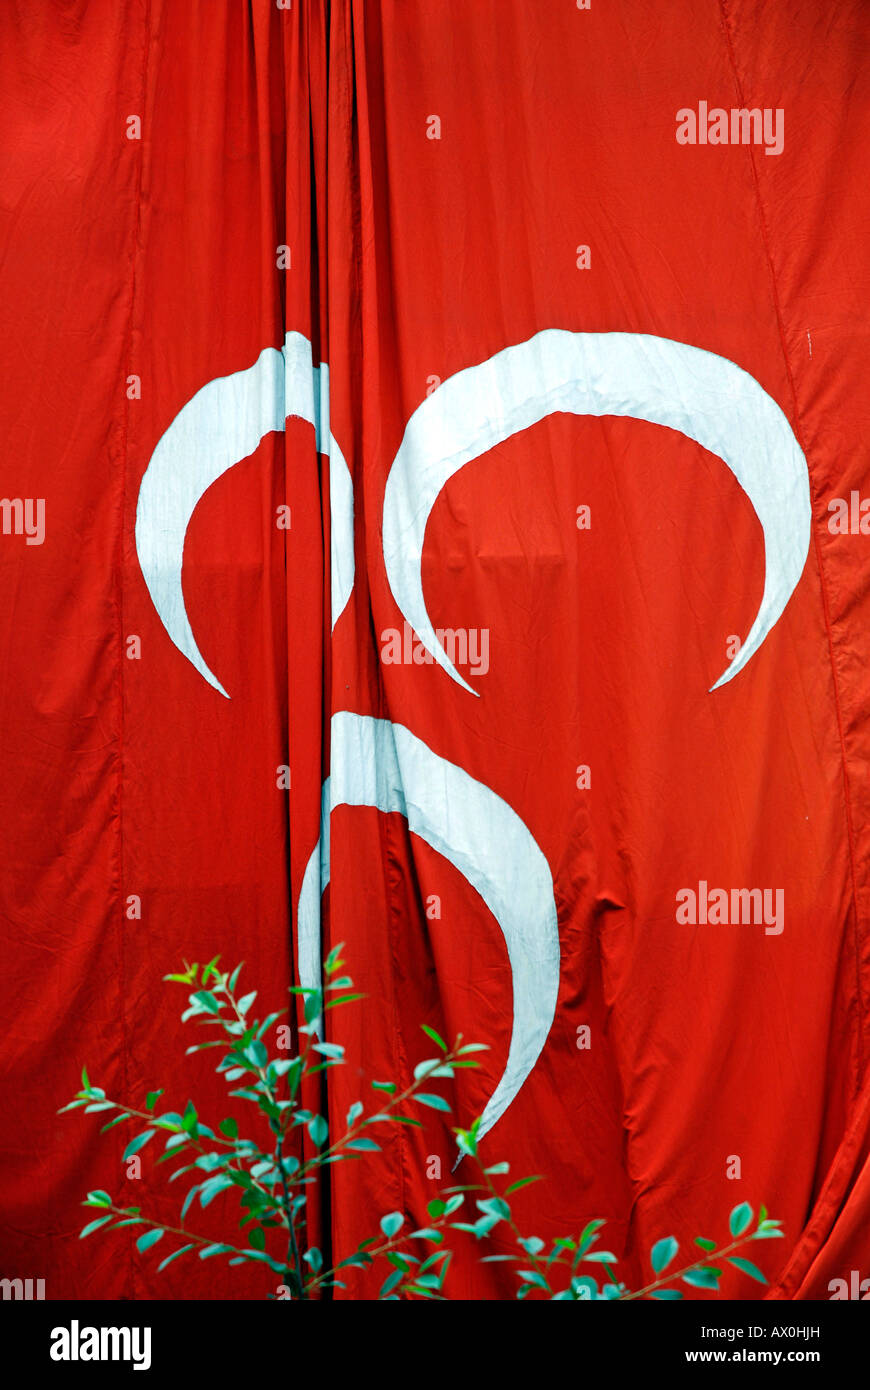 Flag with three crescent moons symbol of the right wing mhp stock flag with three crescent moons symbol of the right wing mhp erzurum anatolia turkey biocorpaavc Gallery